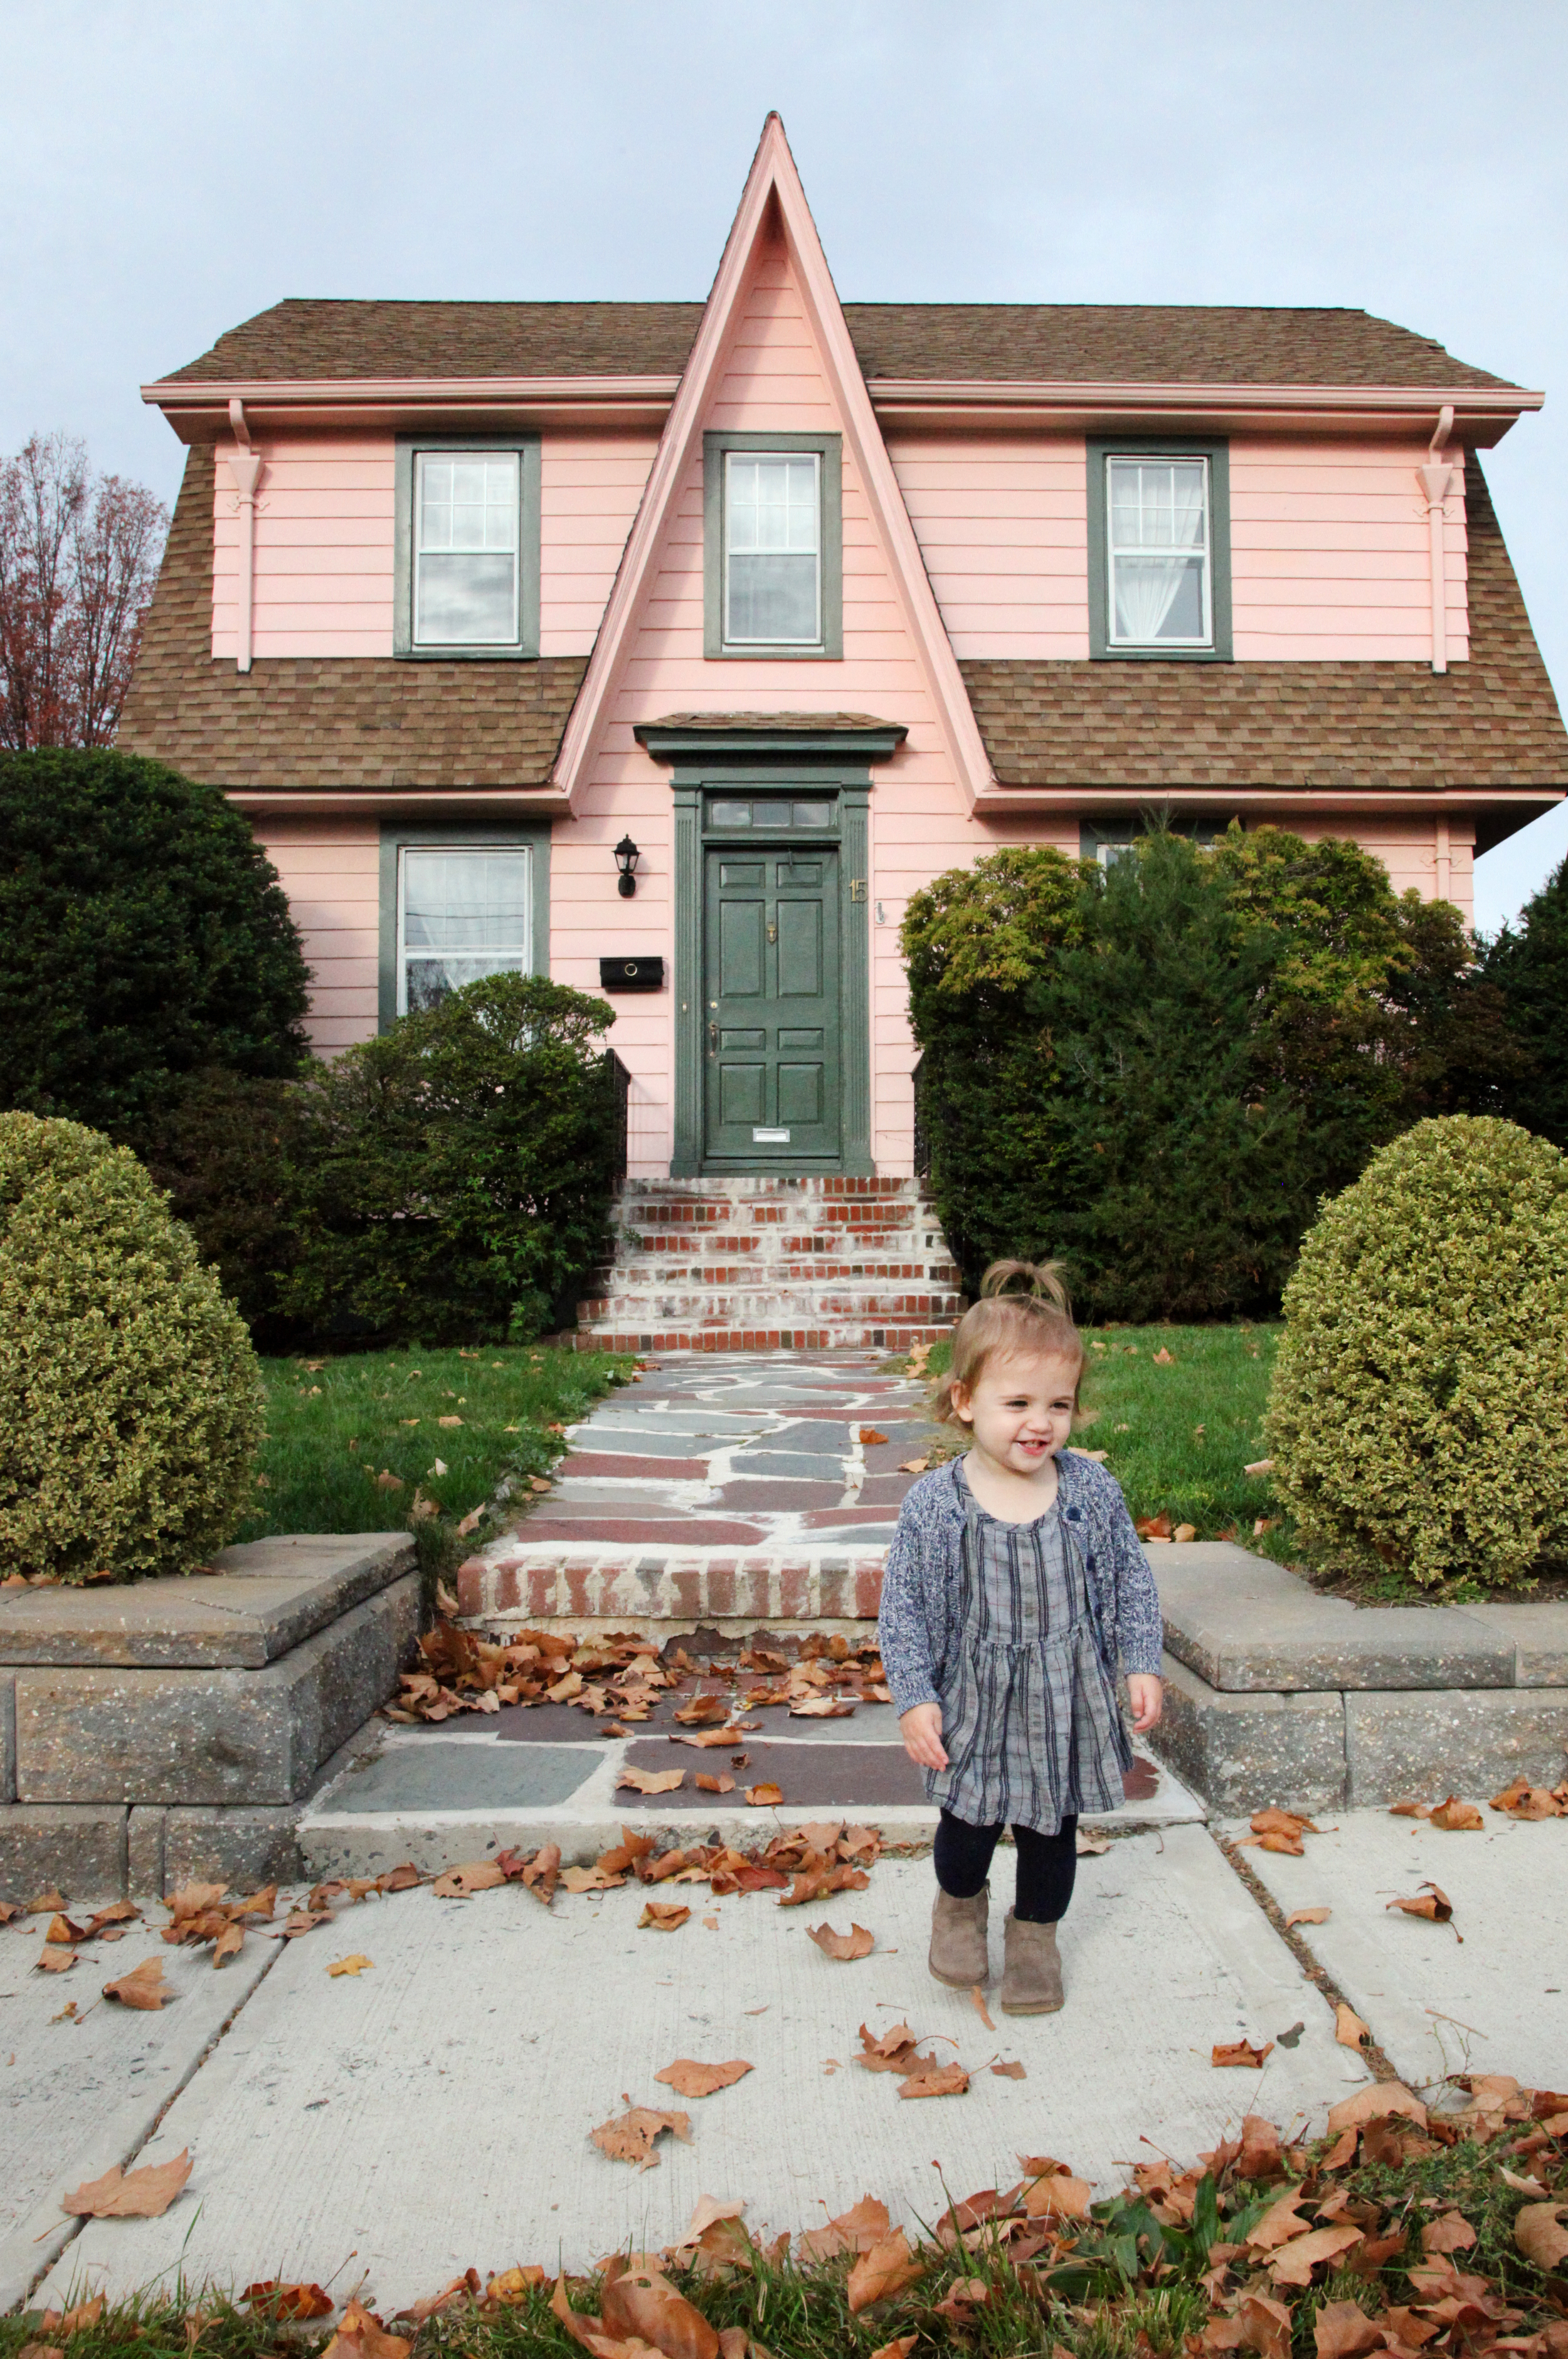 The pink house in the #boburbs!